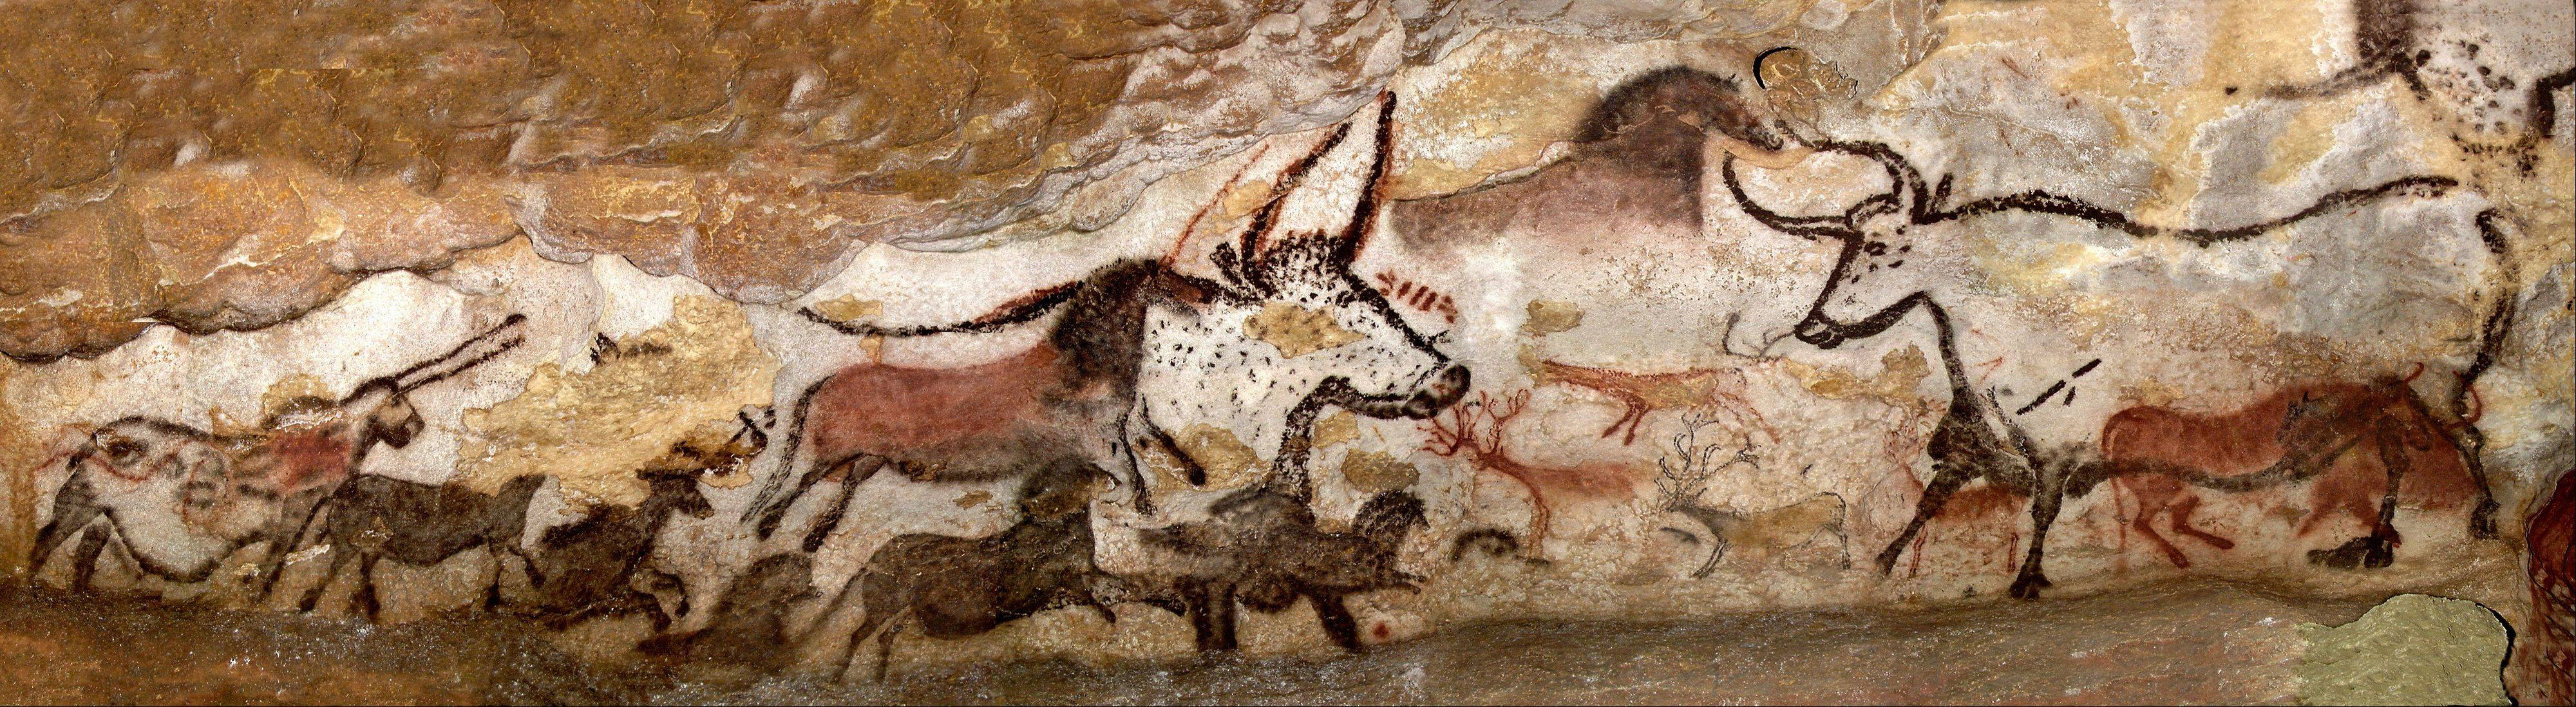 One of the most recognizable images from Lascaux, the Hall of Bulls contains six images of bulls, horses and stag. One bull measures 17 feet long -- the largest animal depicted in cave art.